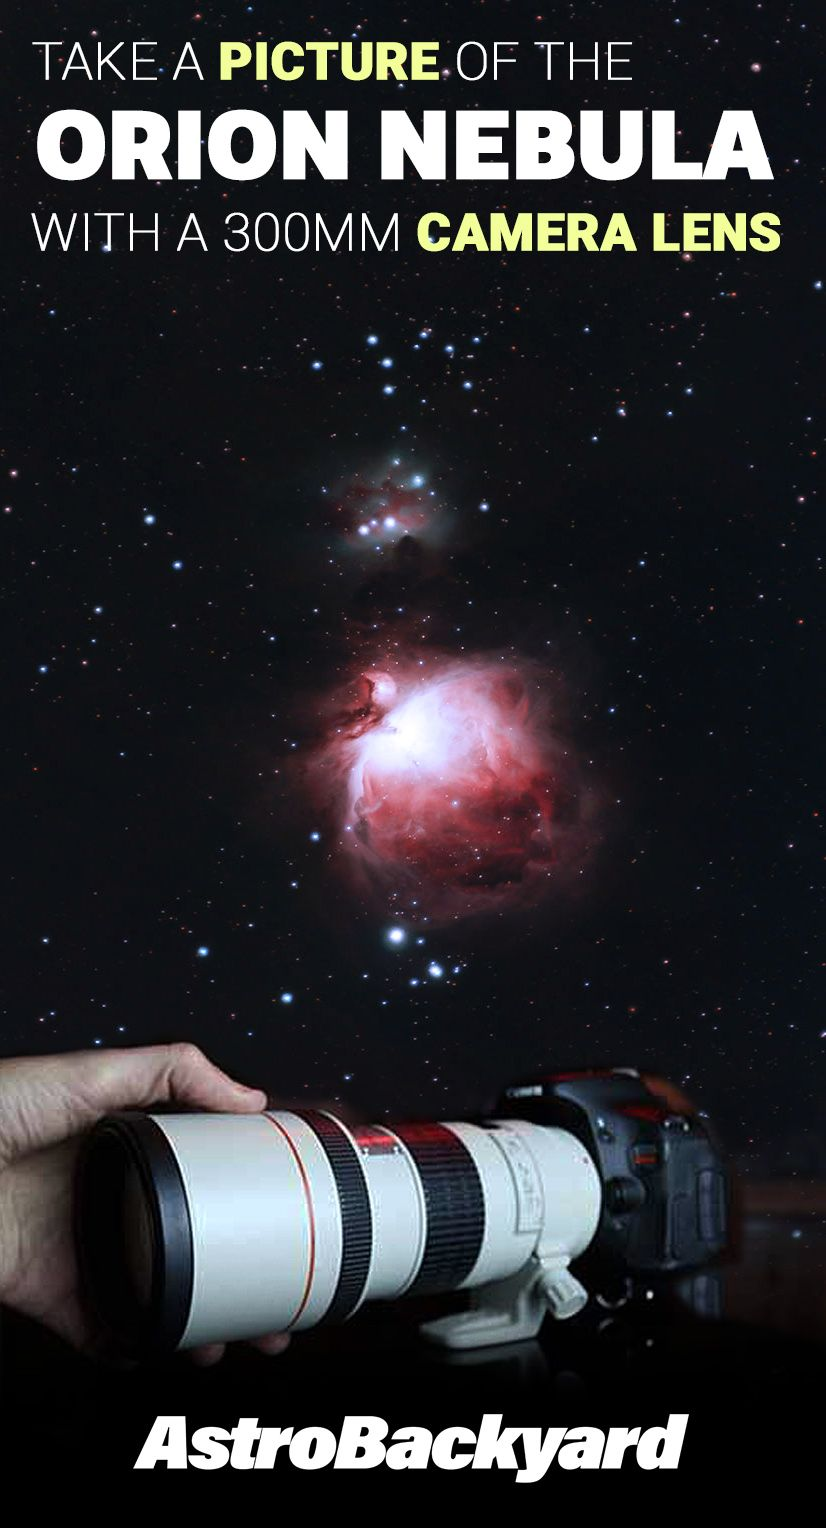 Why The Canon 300mm F 4l Makes A Great Lens For Astrophotography Astrophotography Dslr Photography Dslr Photography Tips